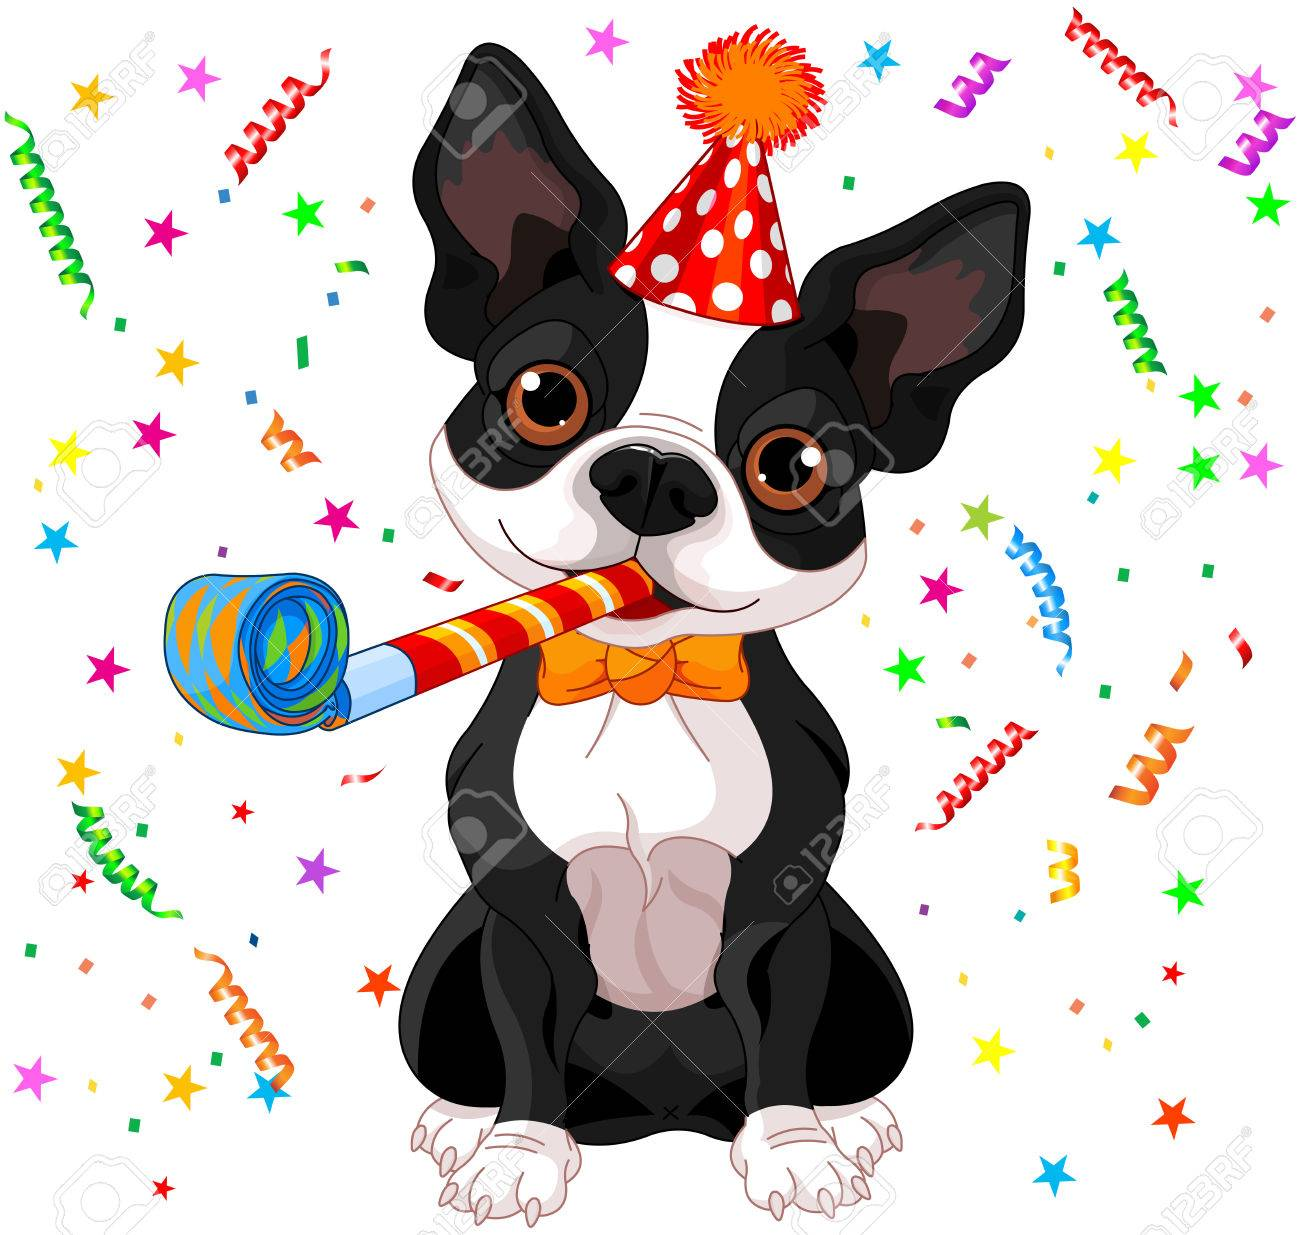 Une hiérarchie de dominance chez le chien? - Page 3 35588778-illustration-of-cute-boston-terrier-celebrating